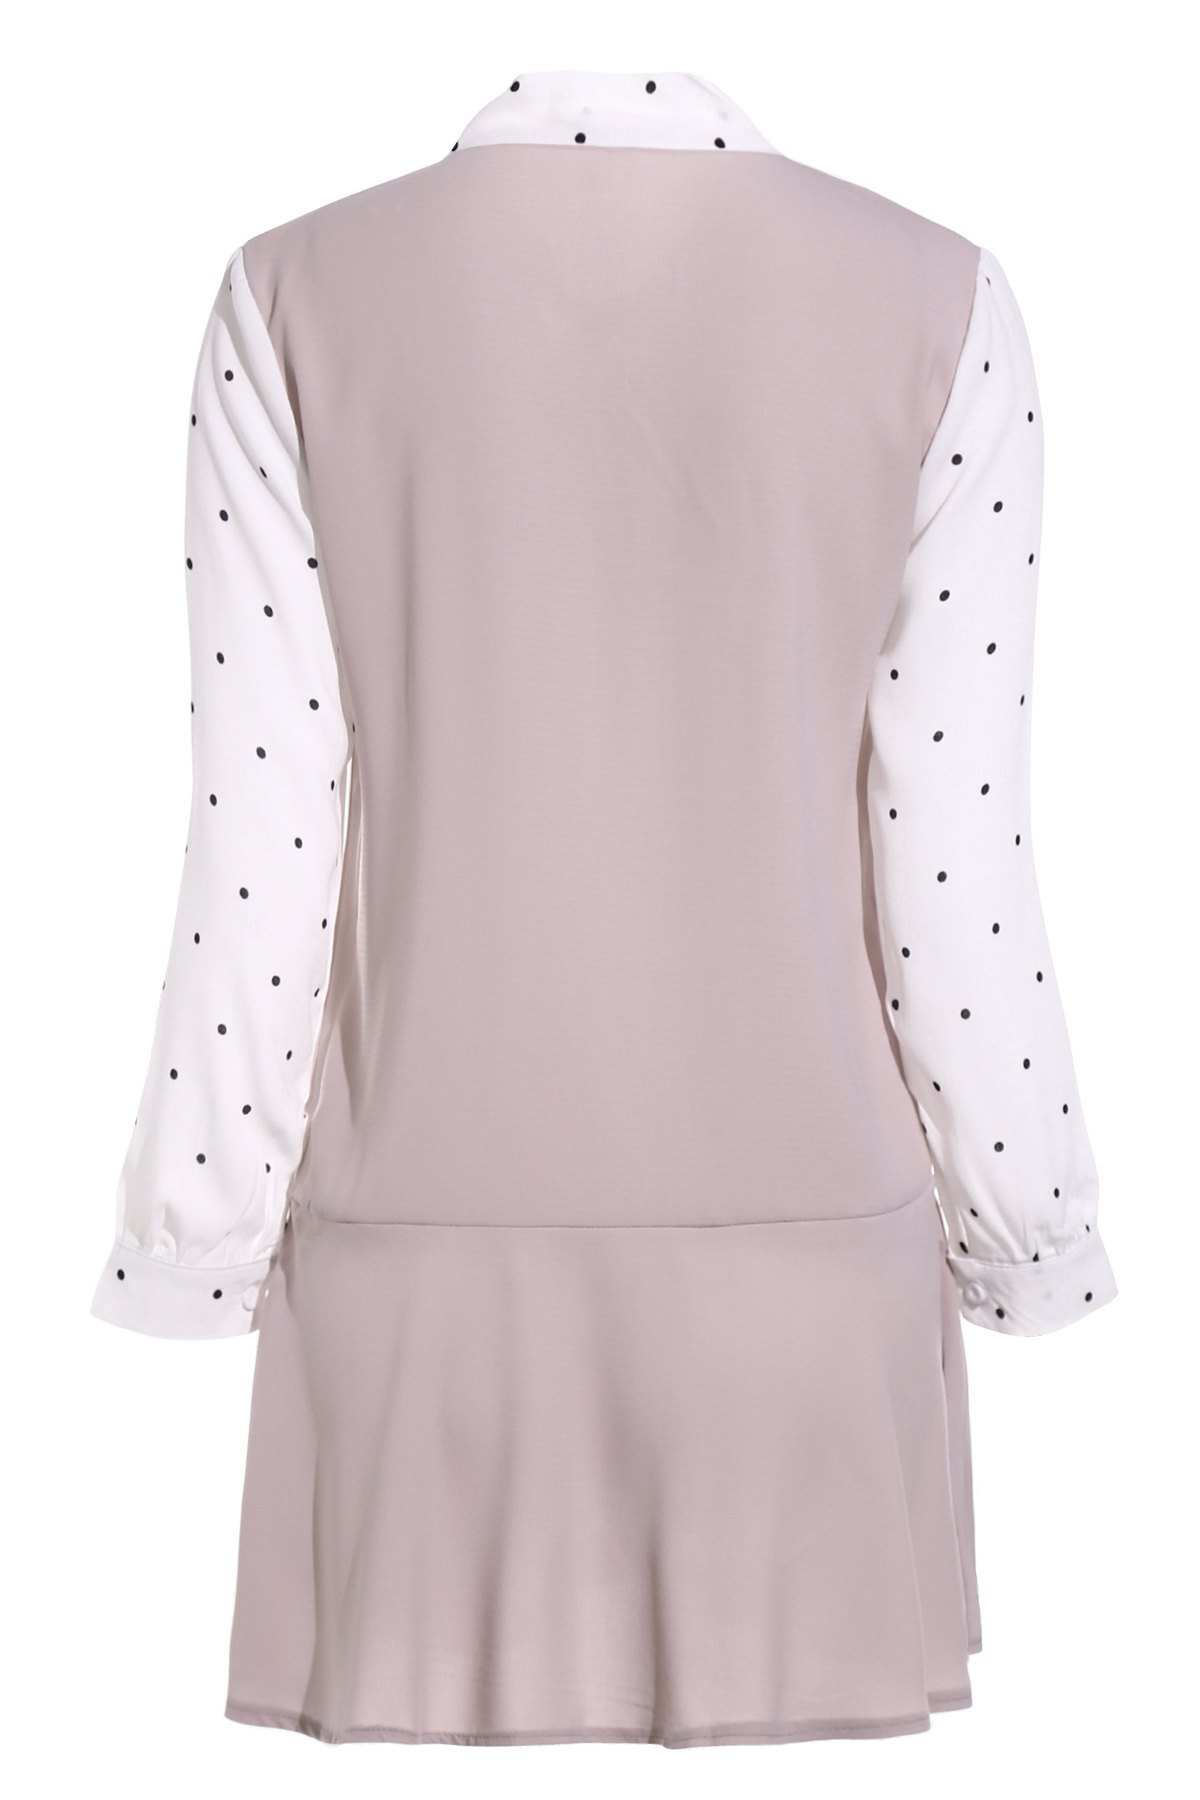 Polka Dot Self Tie Long Sleeve Dress - PINK ONE SIZE(FIT SIZE XS TO M)